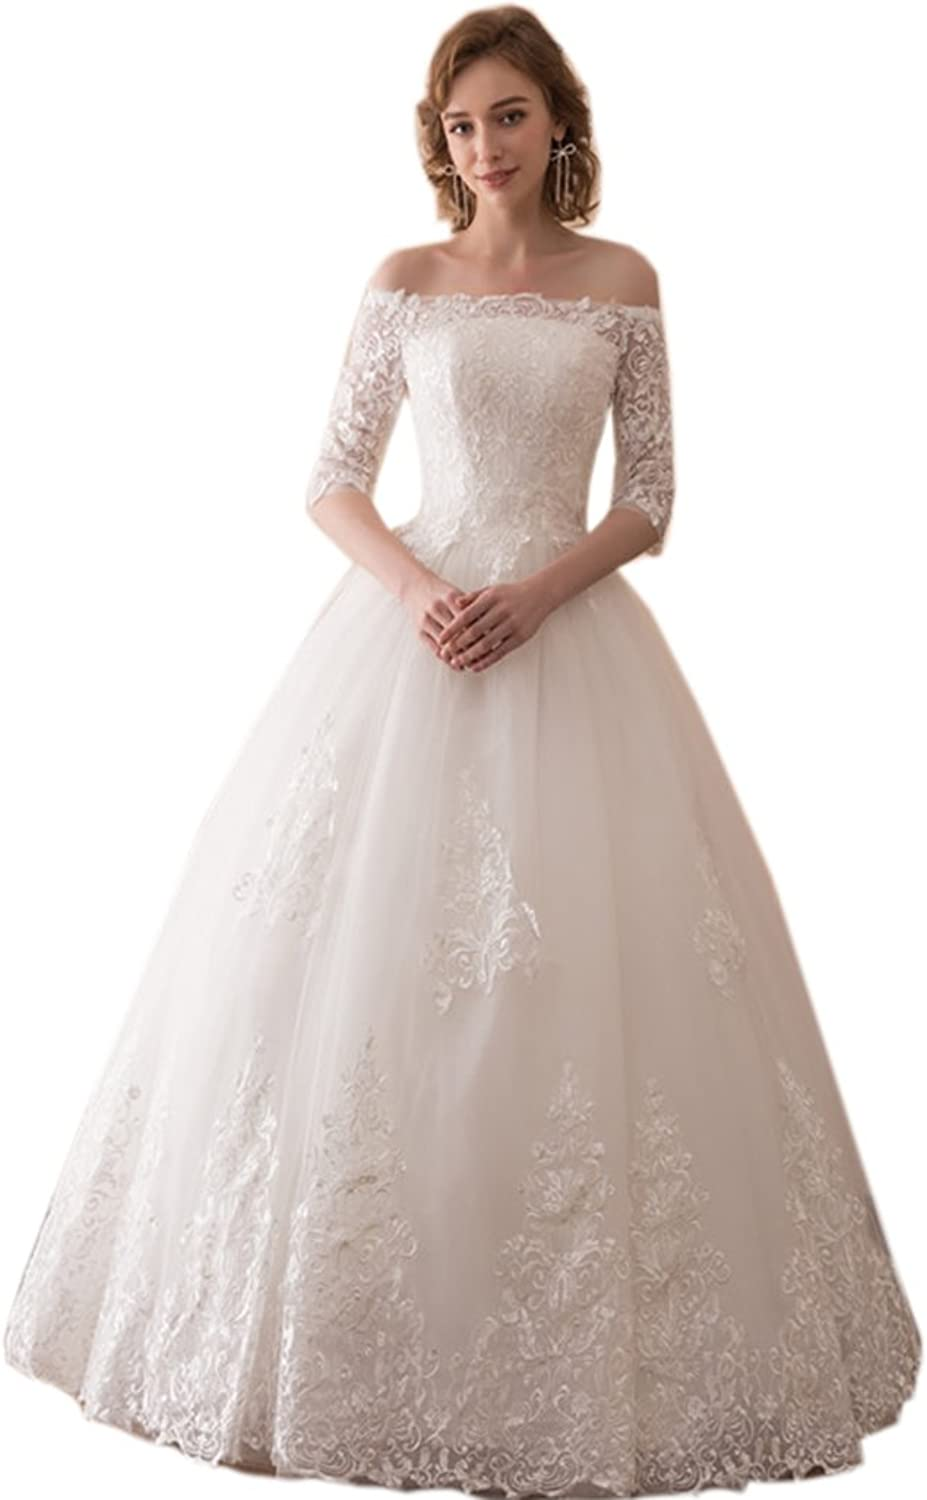 Engerla Women's Off The Shoulder Half Sleeves Tulle Ball Gown for Bride